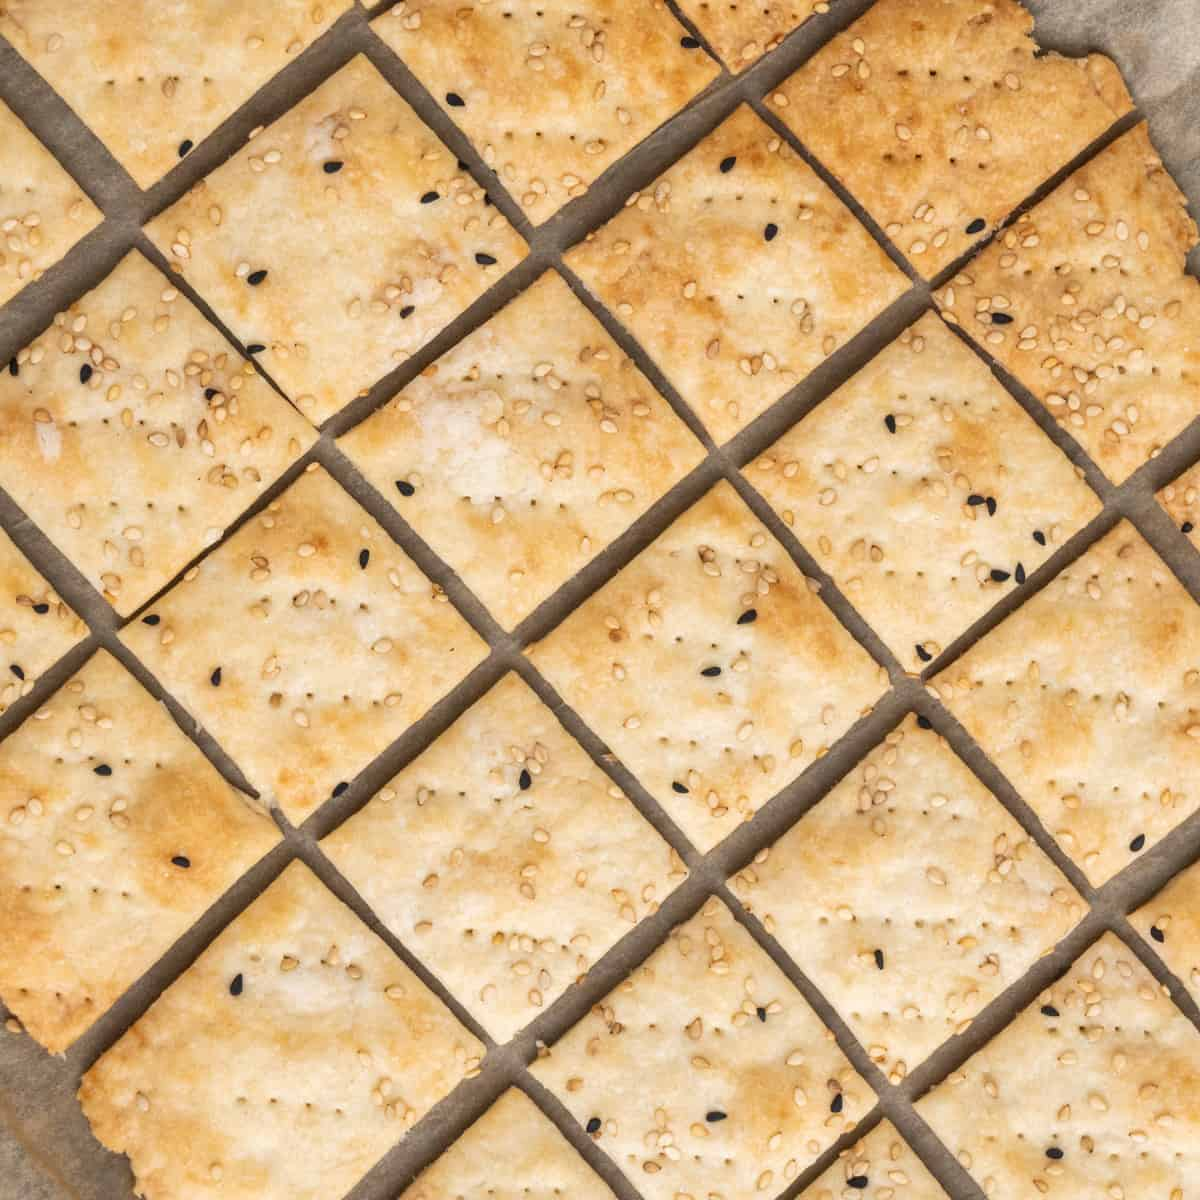 The crackers are now baked and golden brown.